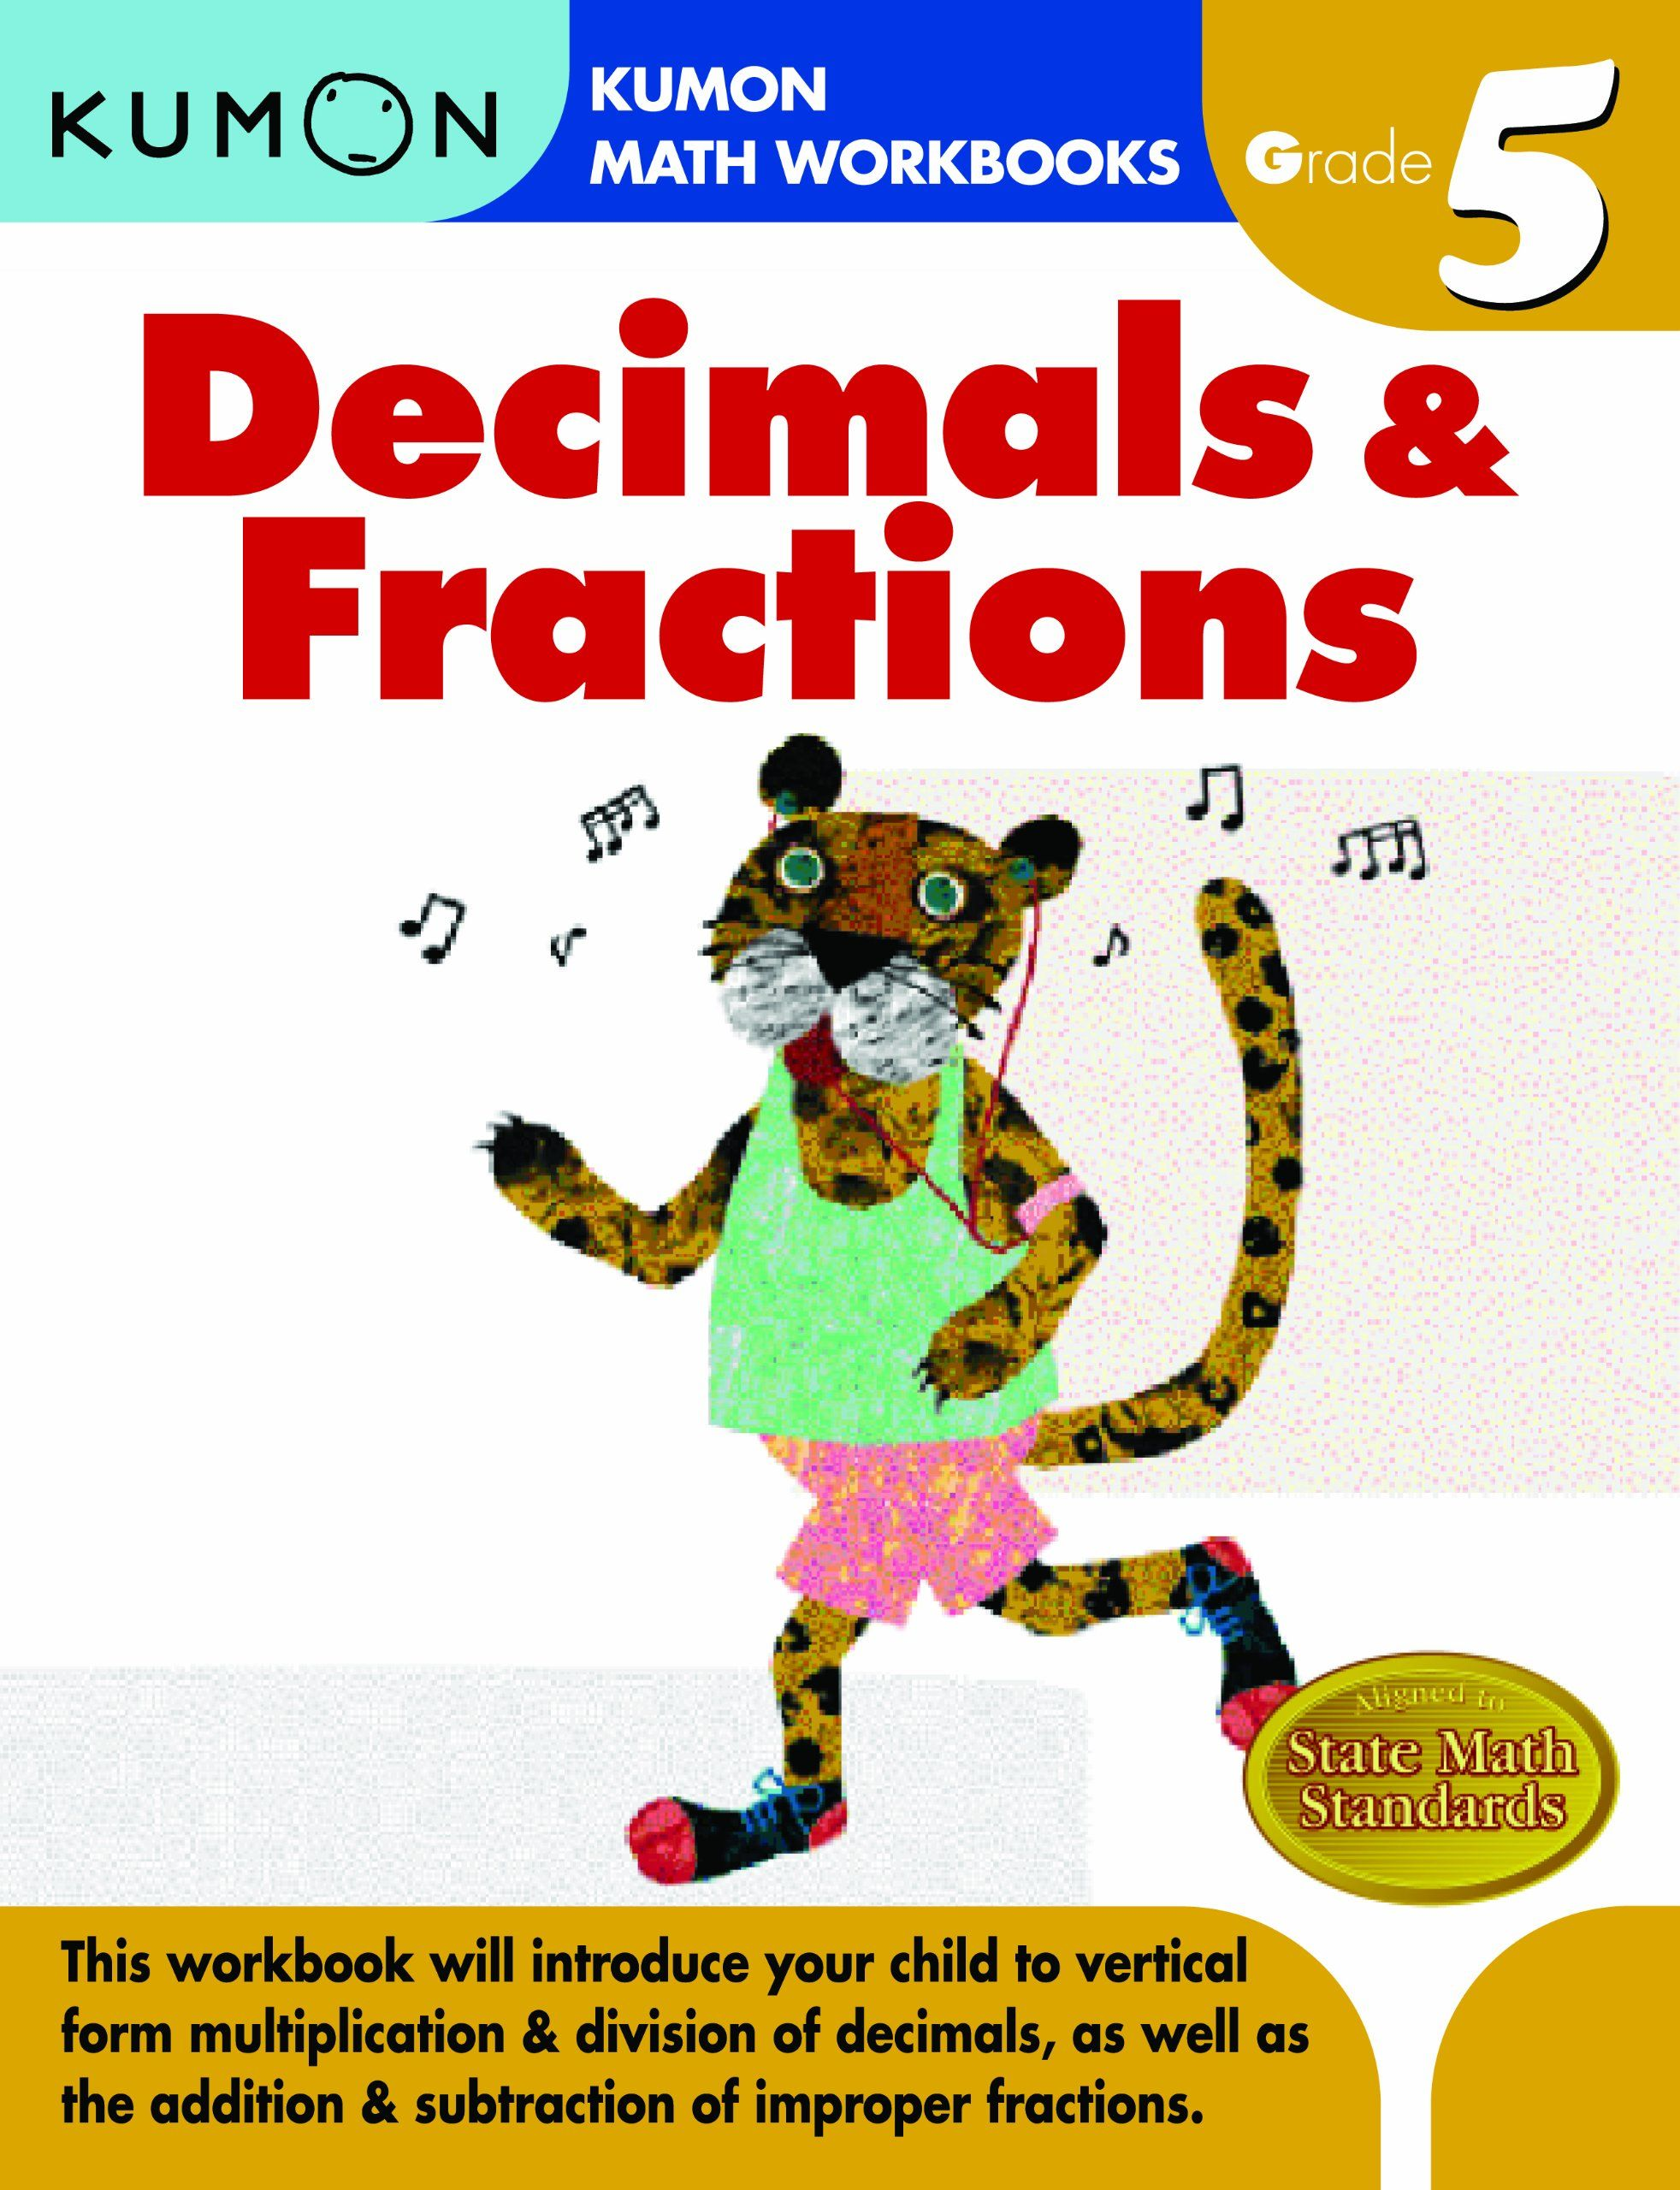 Grade 5 Decimals Amp Fractions Kumon Math Workbooks Price